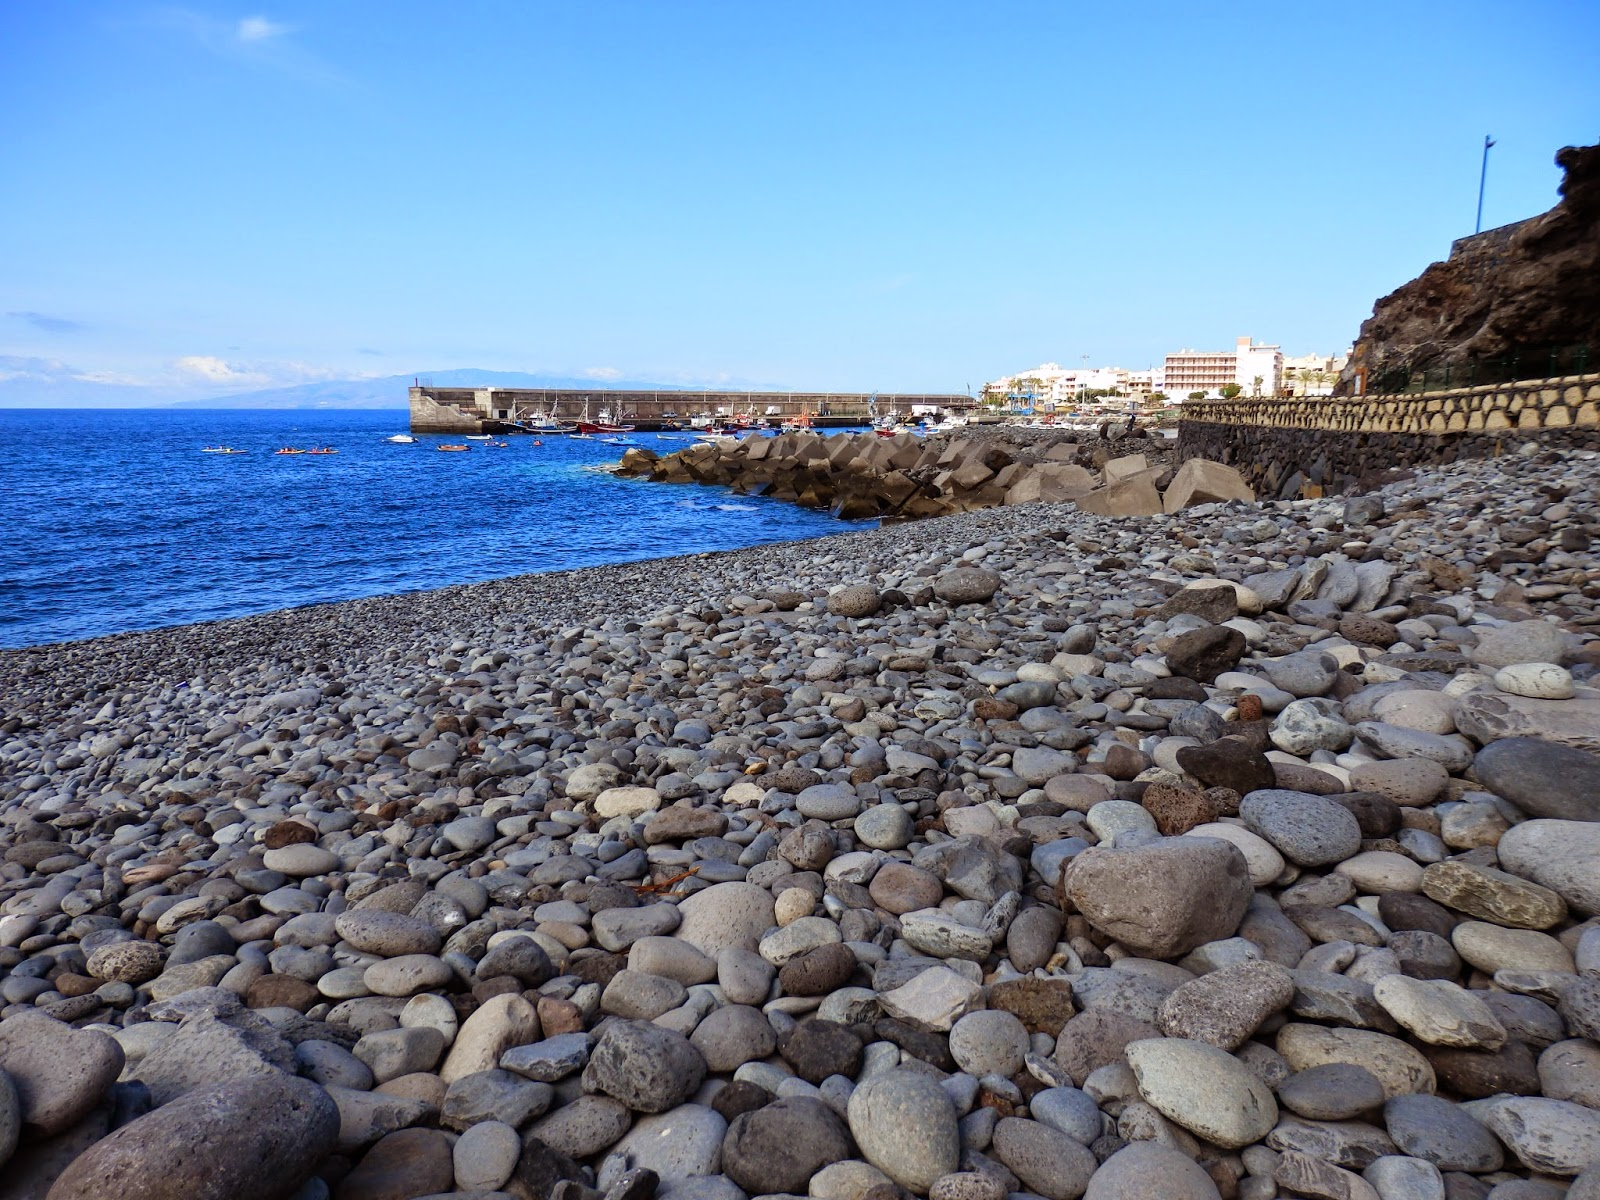 Pebble beach Tenerife